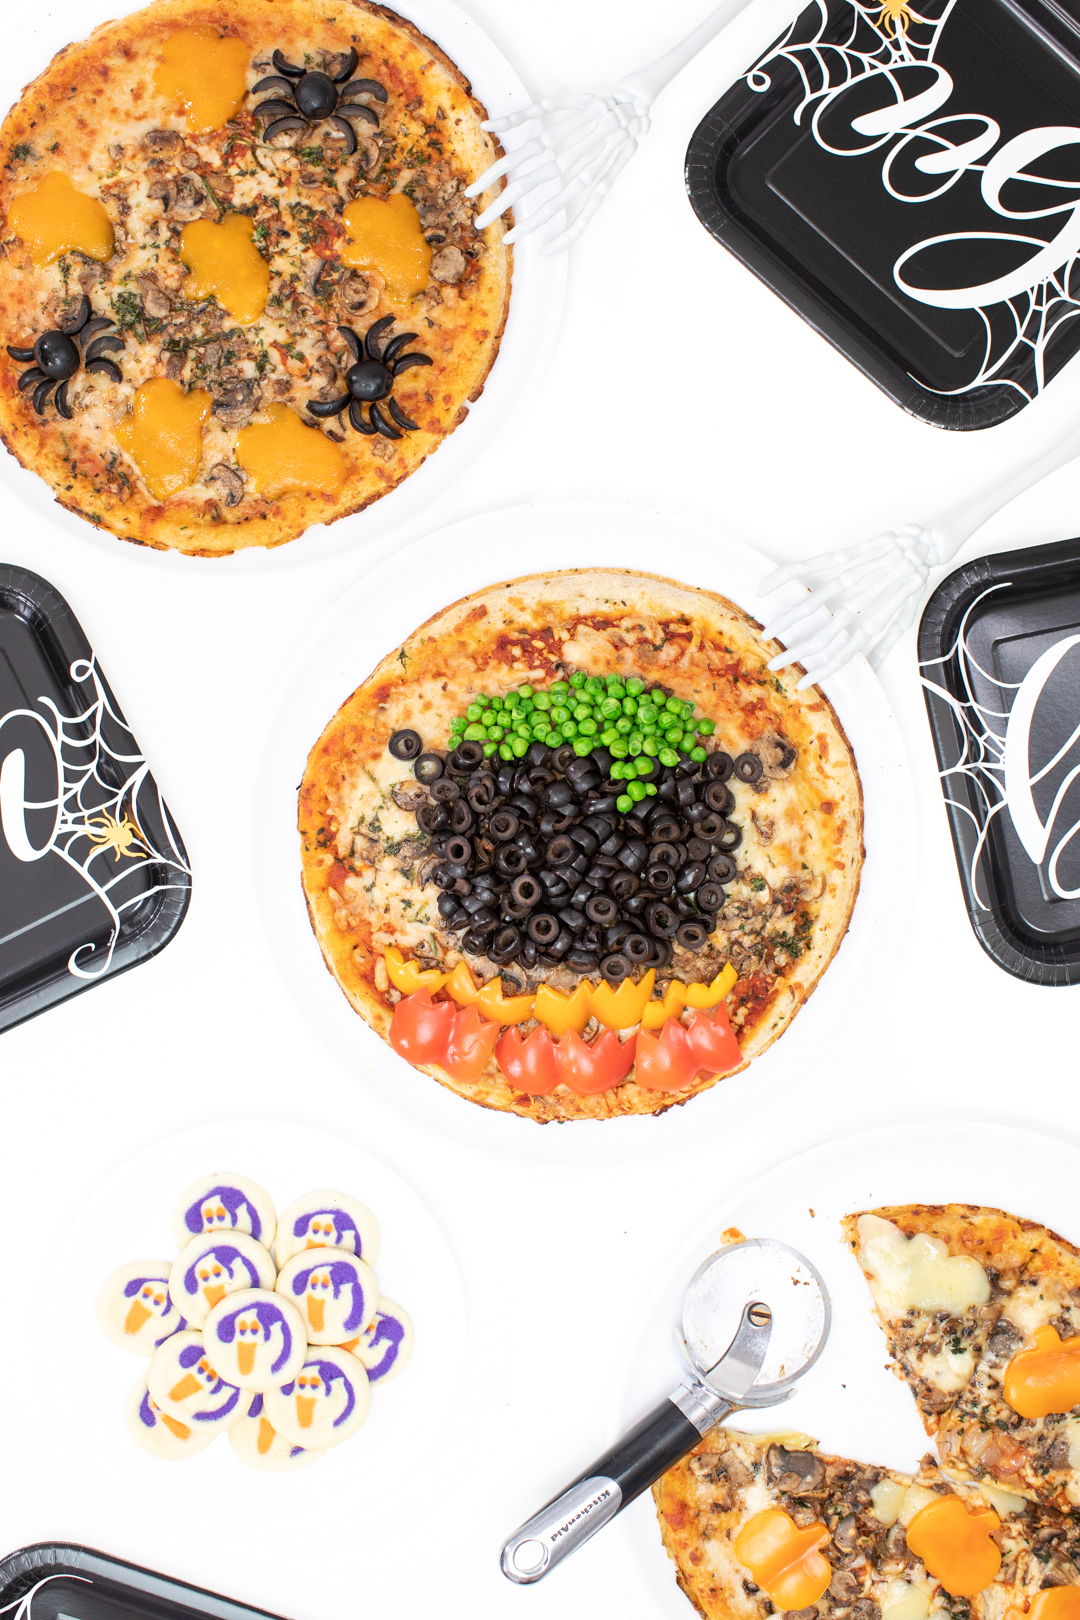 witch cauldron pizza and ghost cookies set out on a table for serving